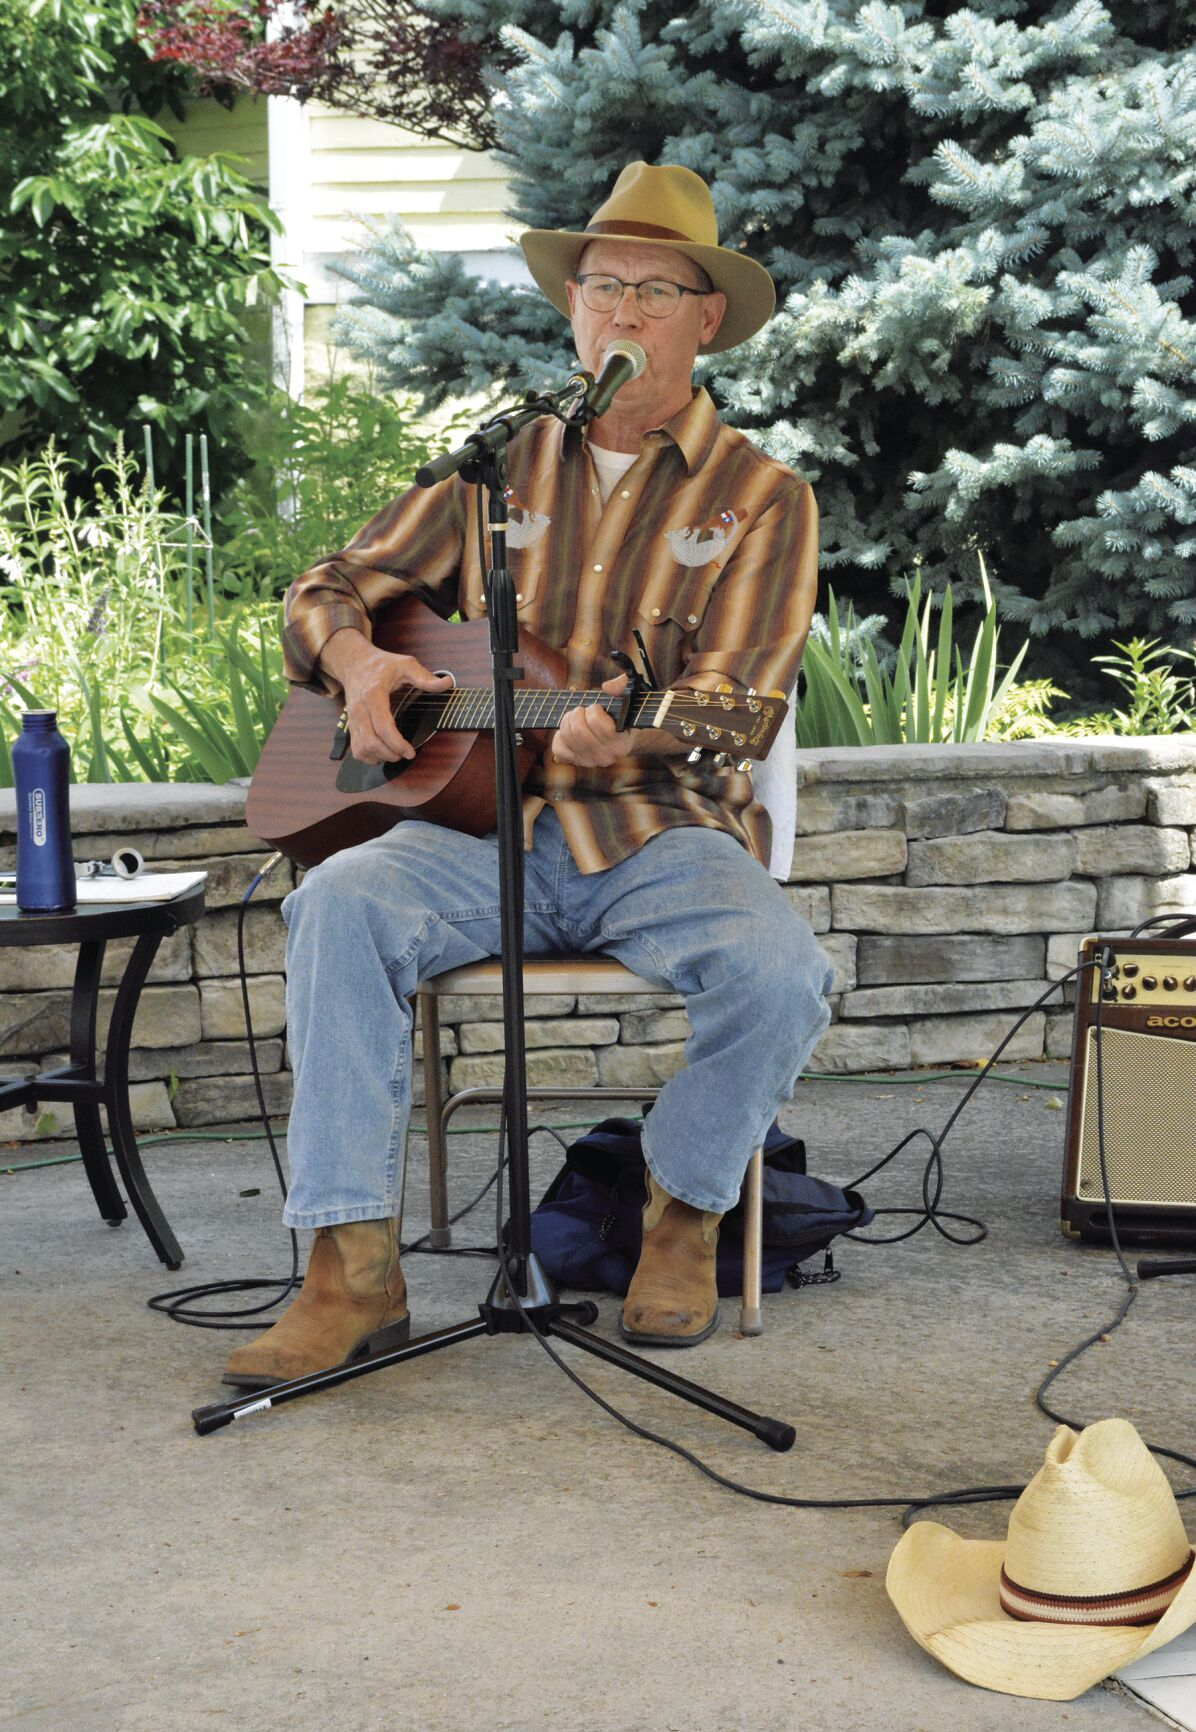 Liberty's Make Music offers melodious variety